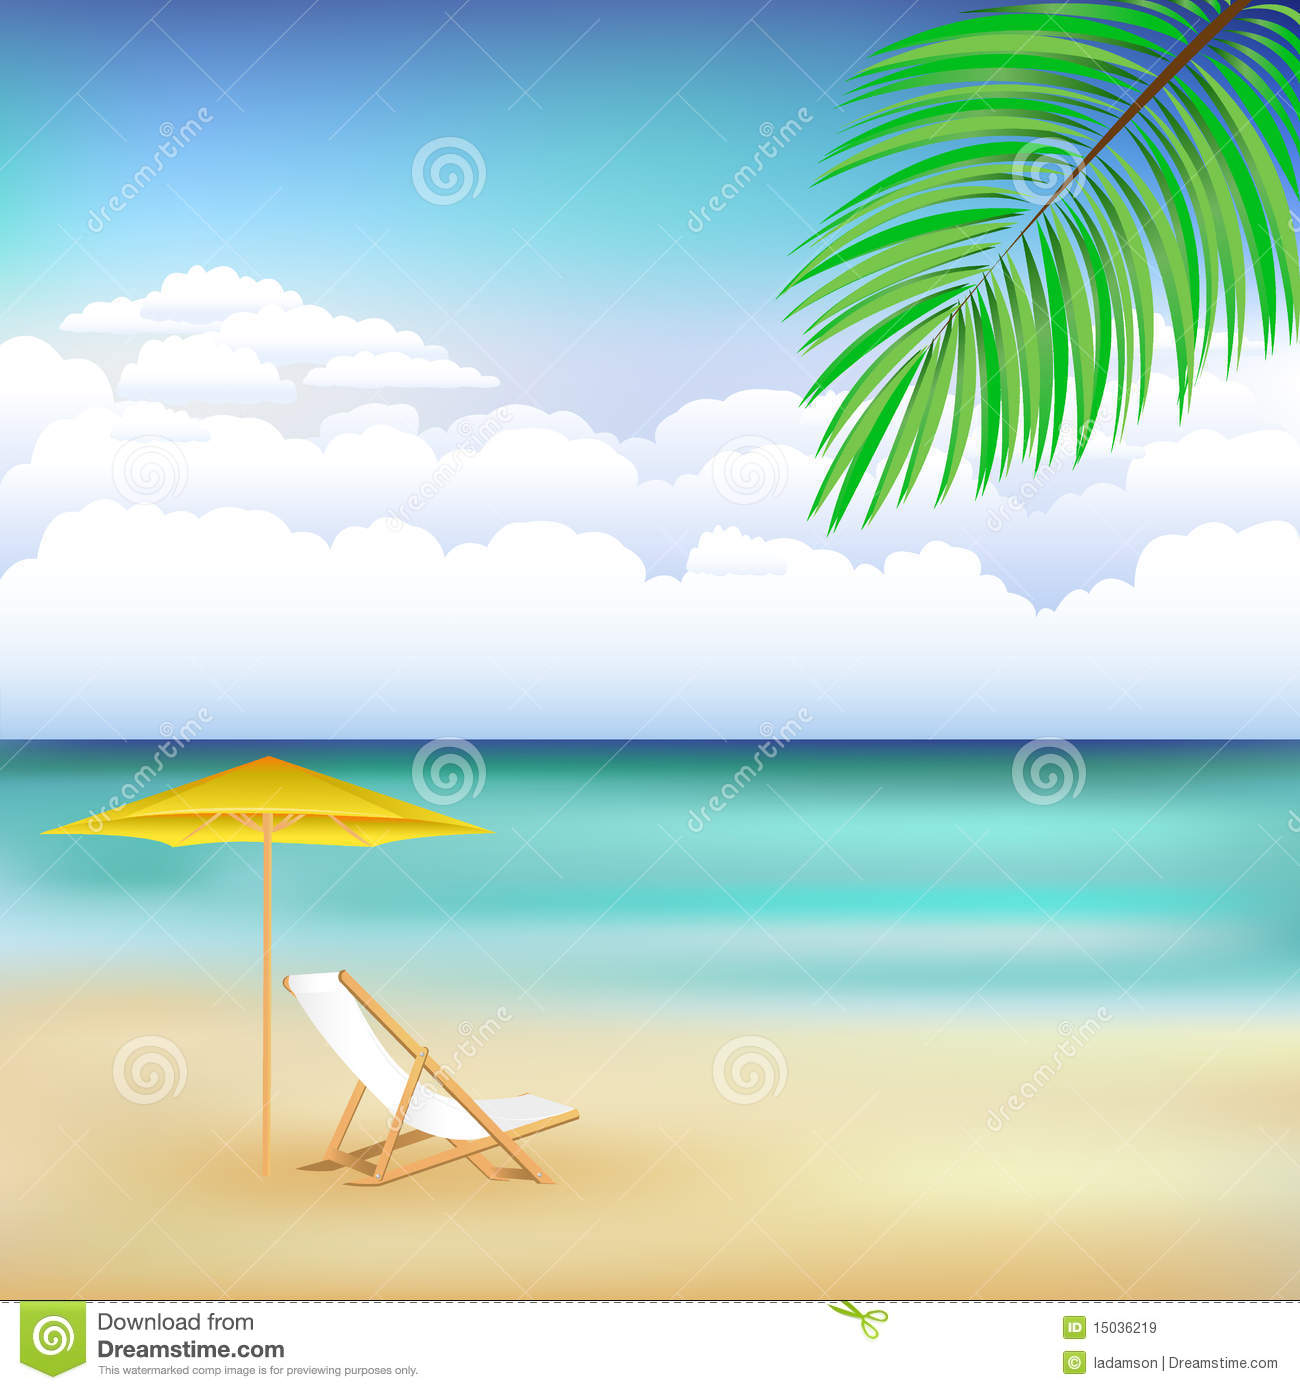 7 Beach Landscape Vector Images